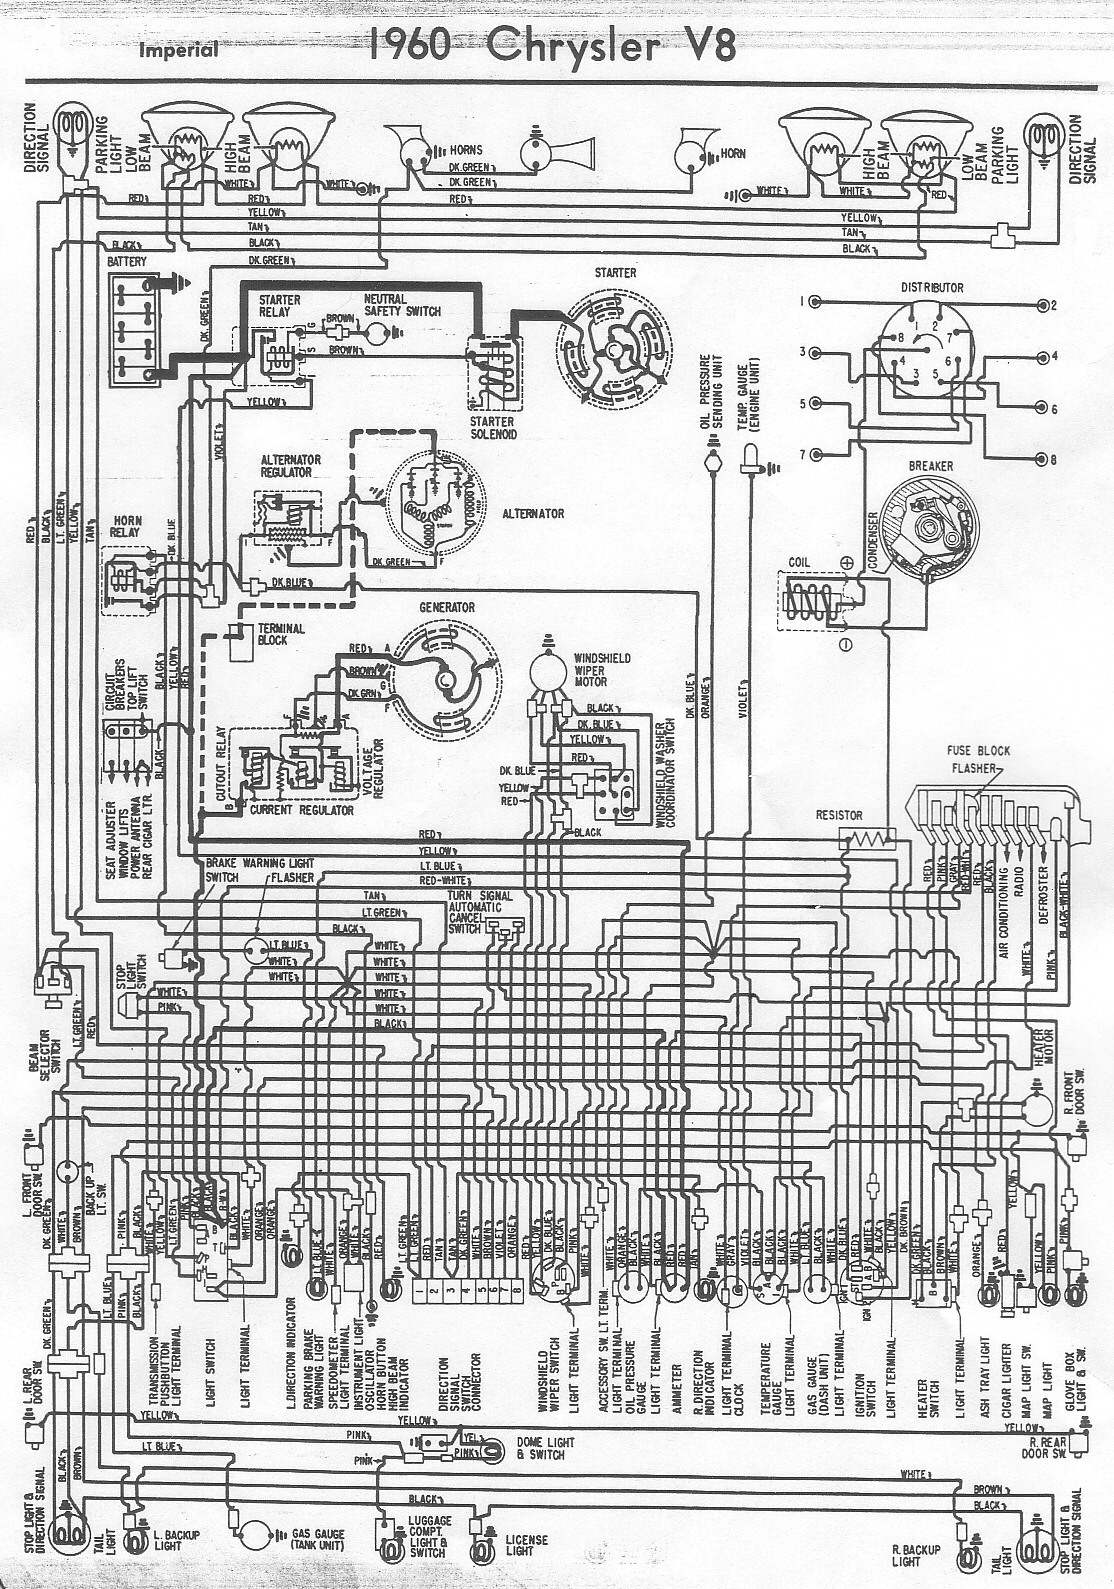 small resolution of free auto wiring diagram 1960 chrysler v8 imperial wiring 1951 chrysler 2 door hardtop 1955 imperial